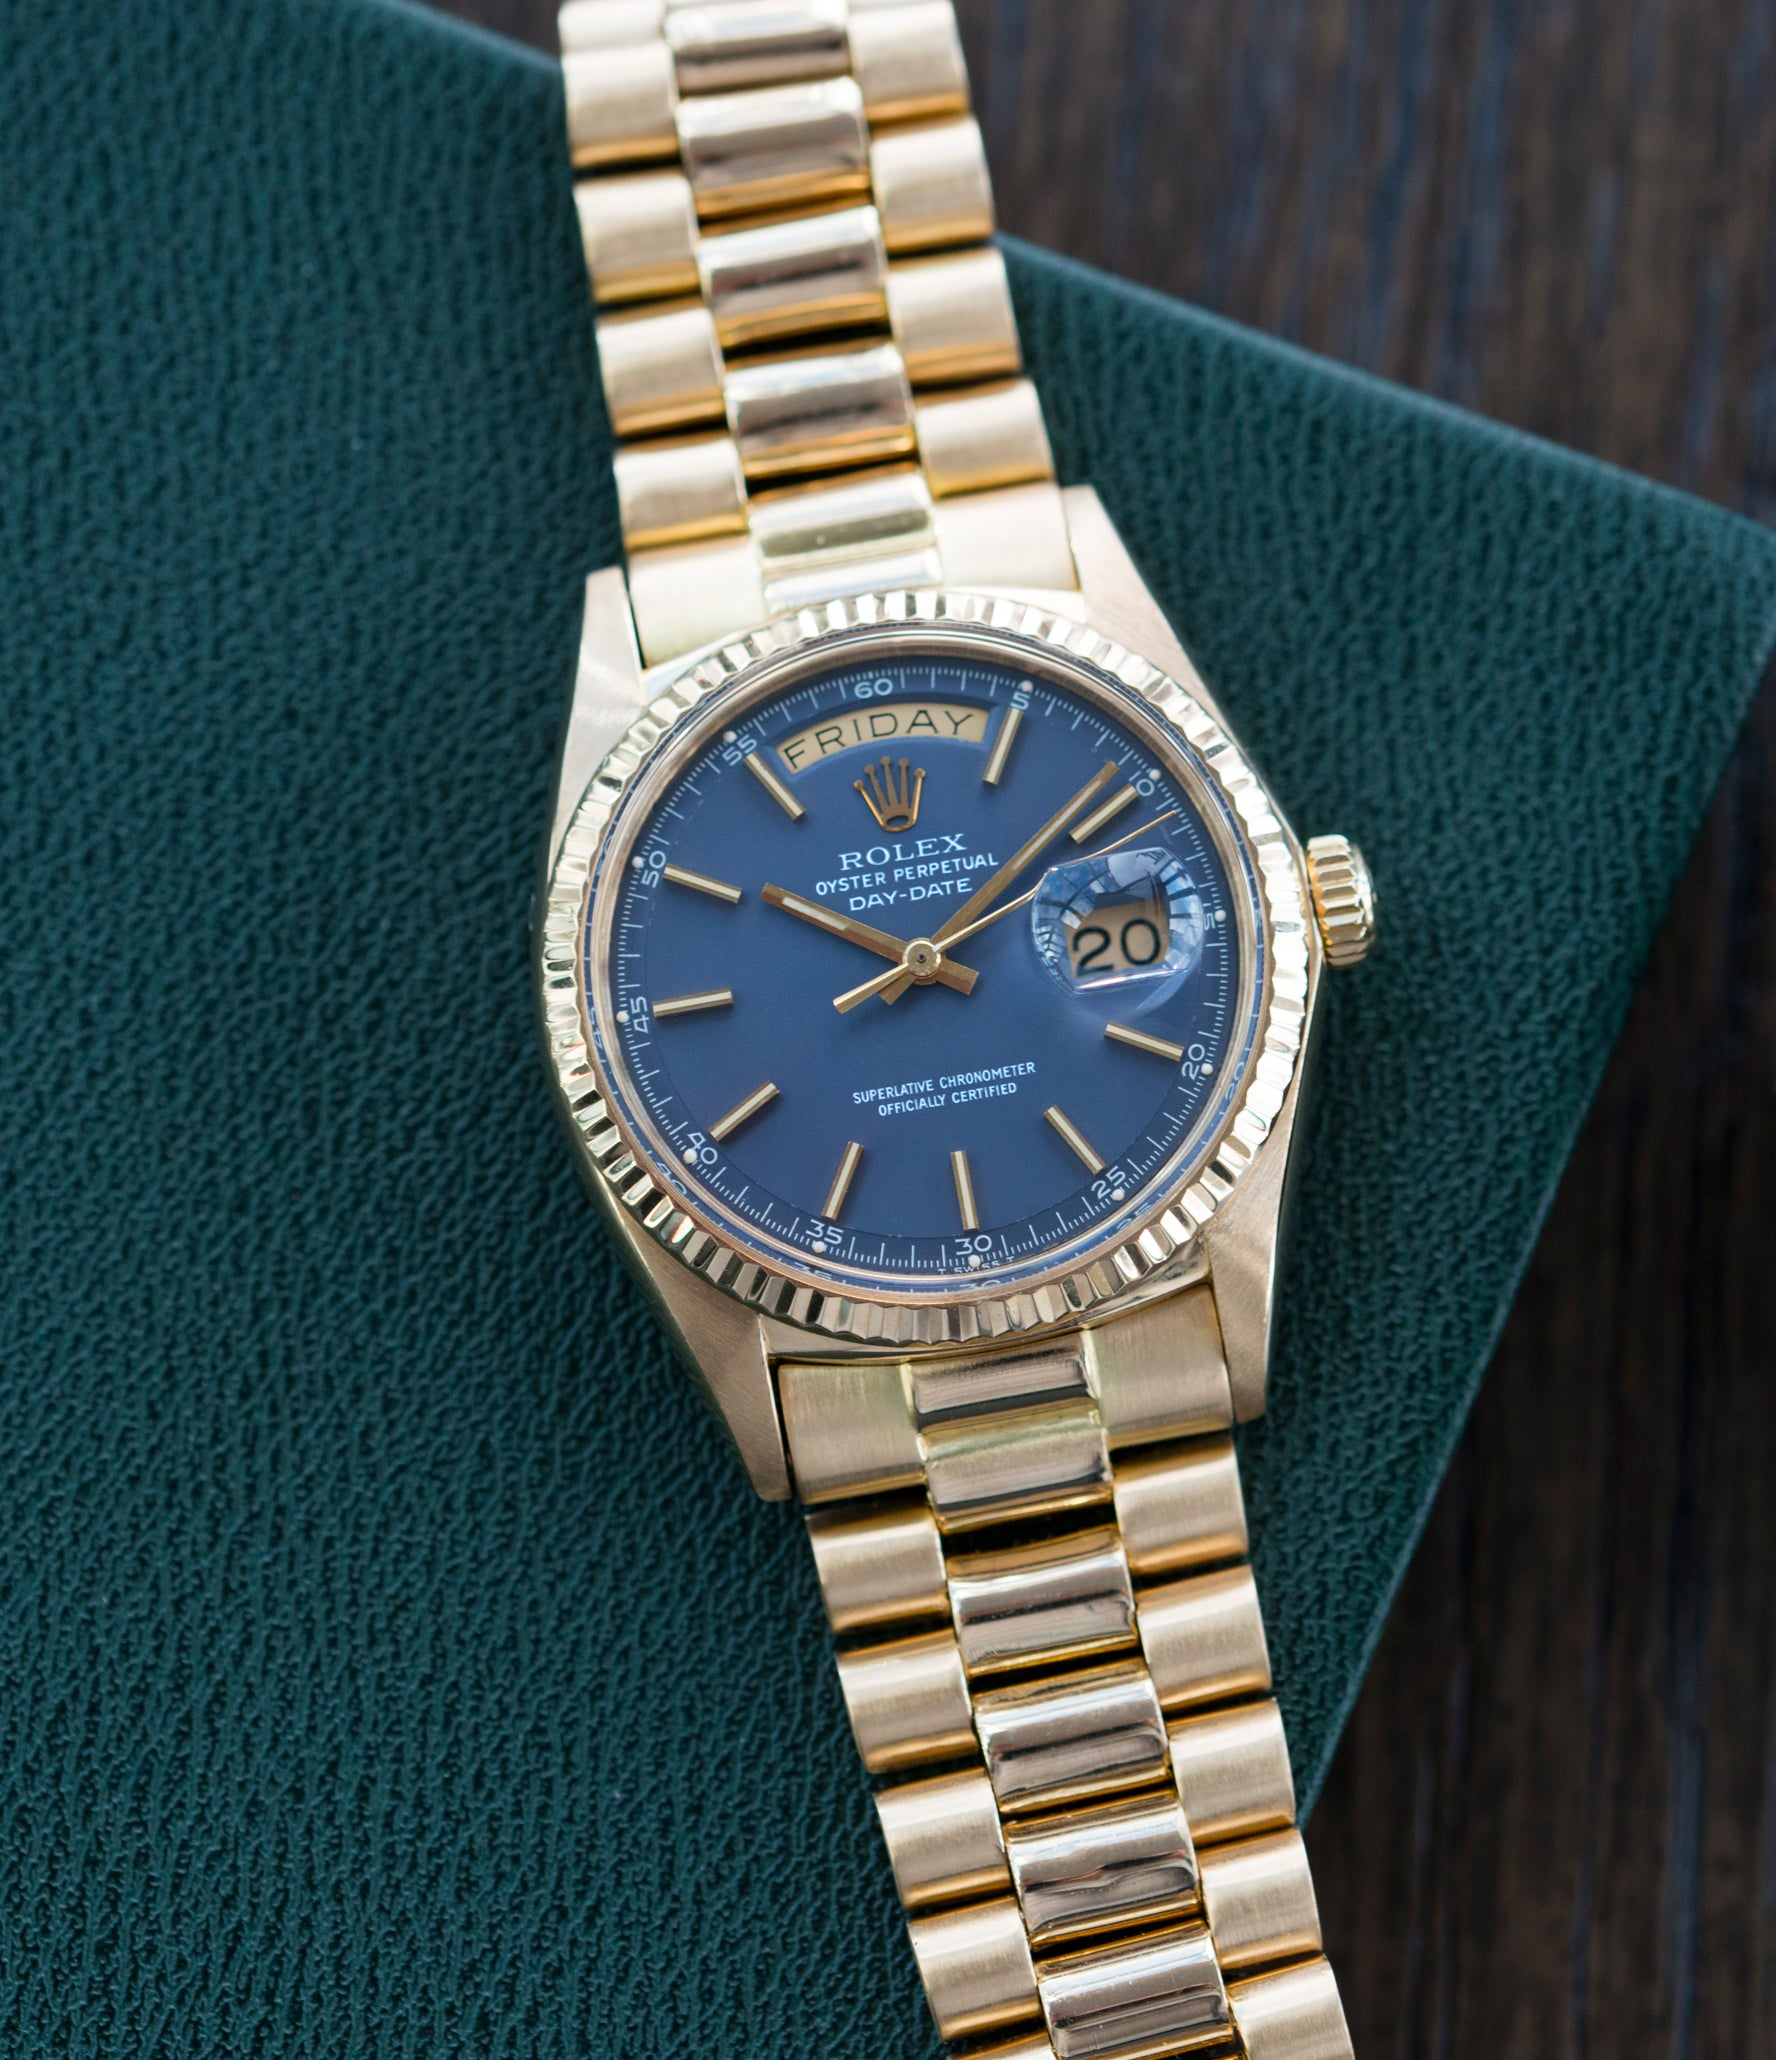 buy Rolex Day-Date 1803 Oyster Perpetual Cal. 1556 gold watch blue dial for sale online at A Collected Man London UK specialist of rare watches